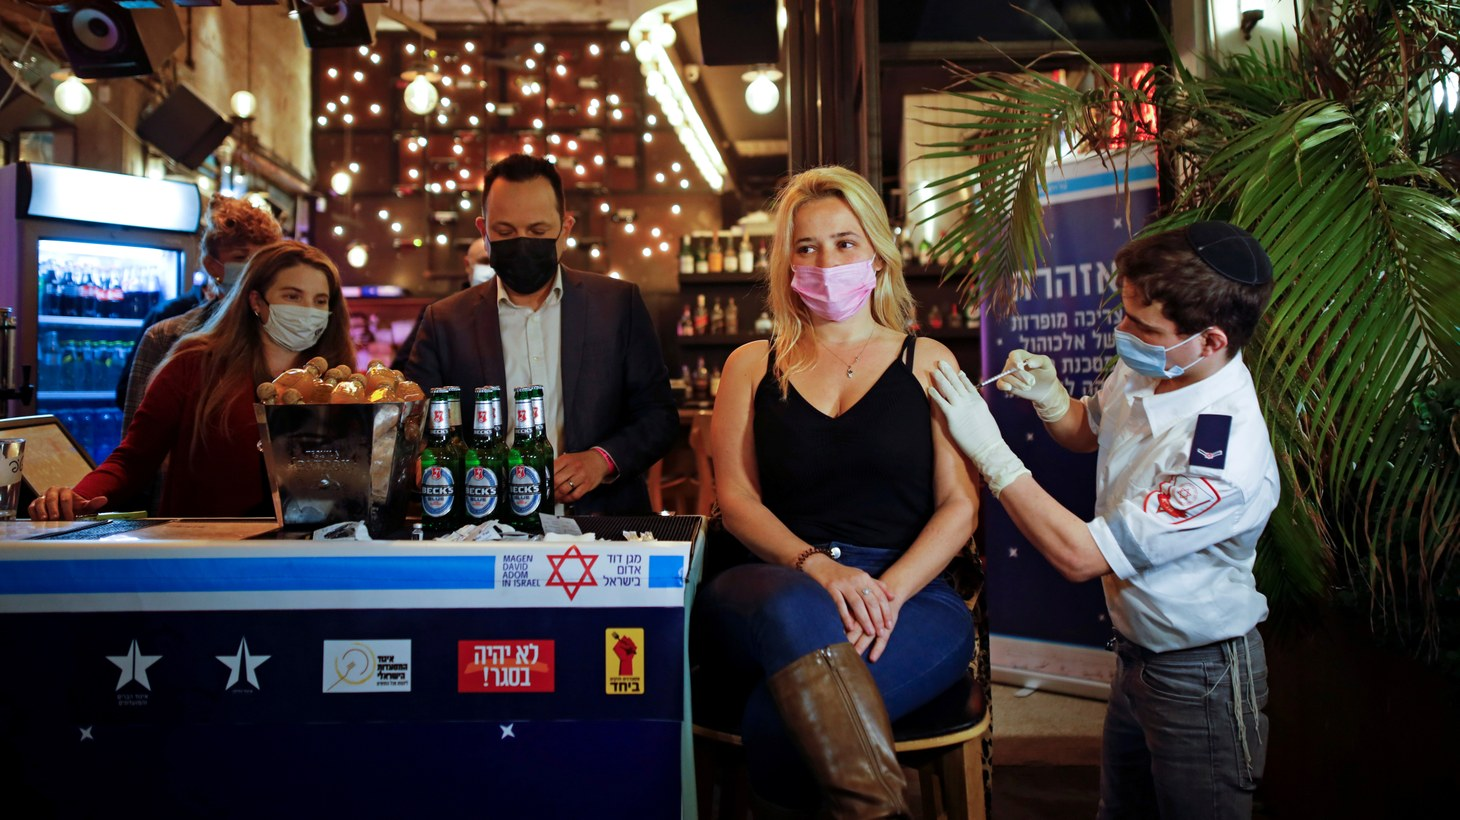 A woman receives a vaccination against the coronavirus disease (COVID-19) as part of a Tel Aviv municipality initiative offering a free drink at a bar to residents getting the shot, in Tel Aviv, Israel, February 18, 2021.